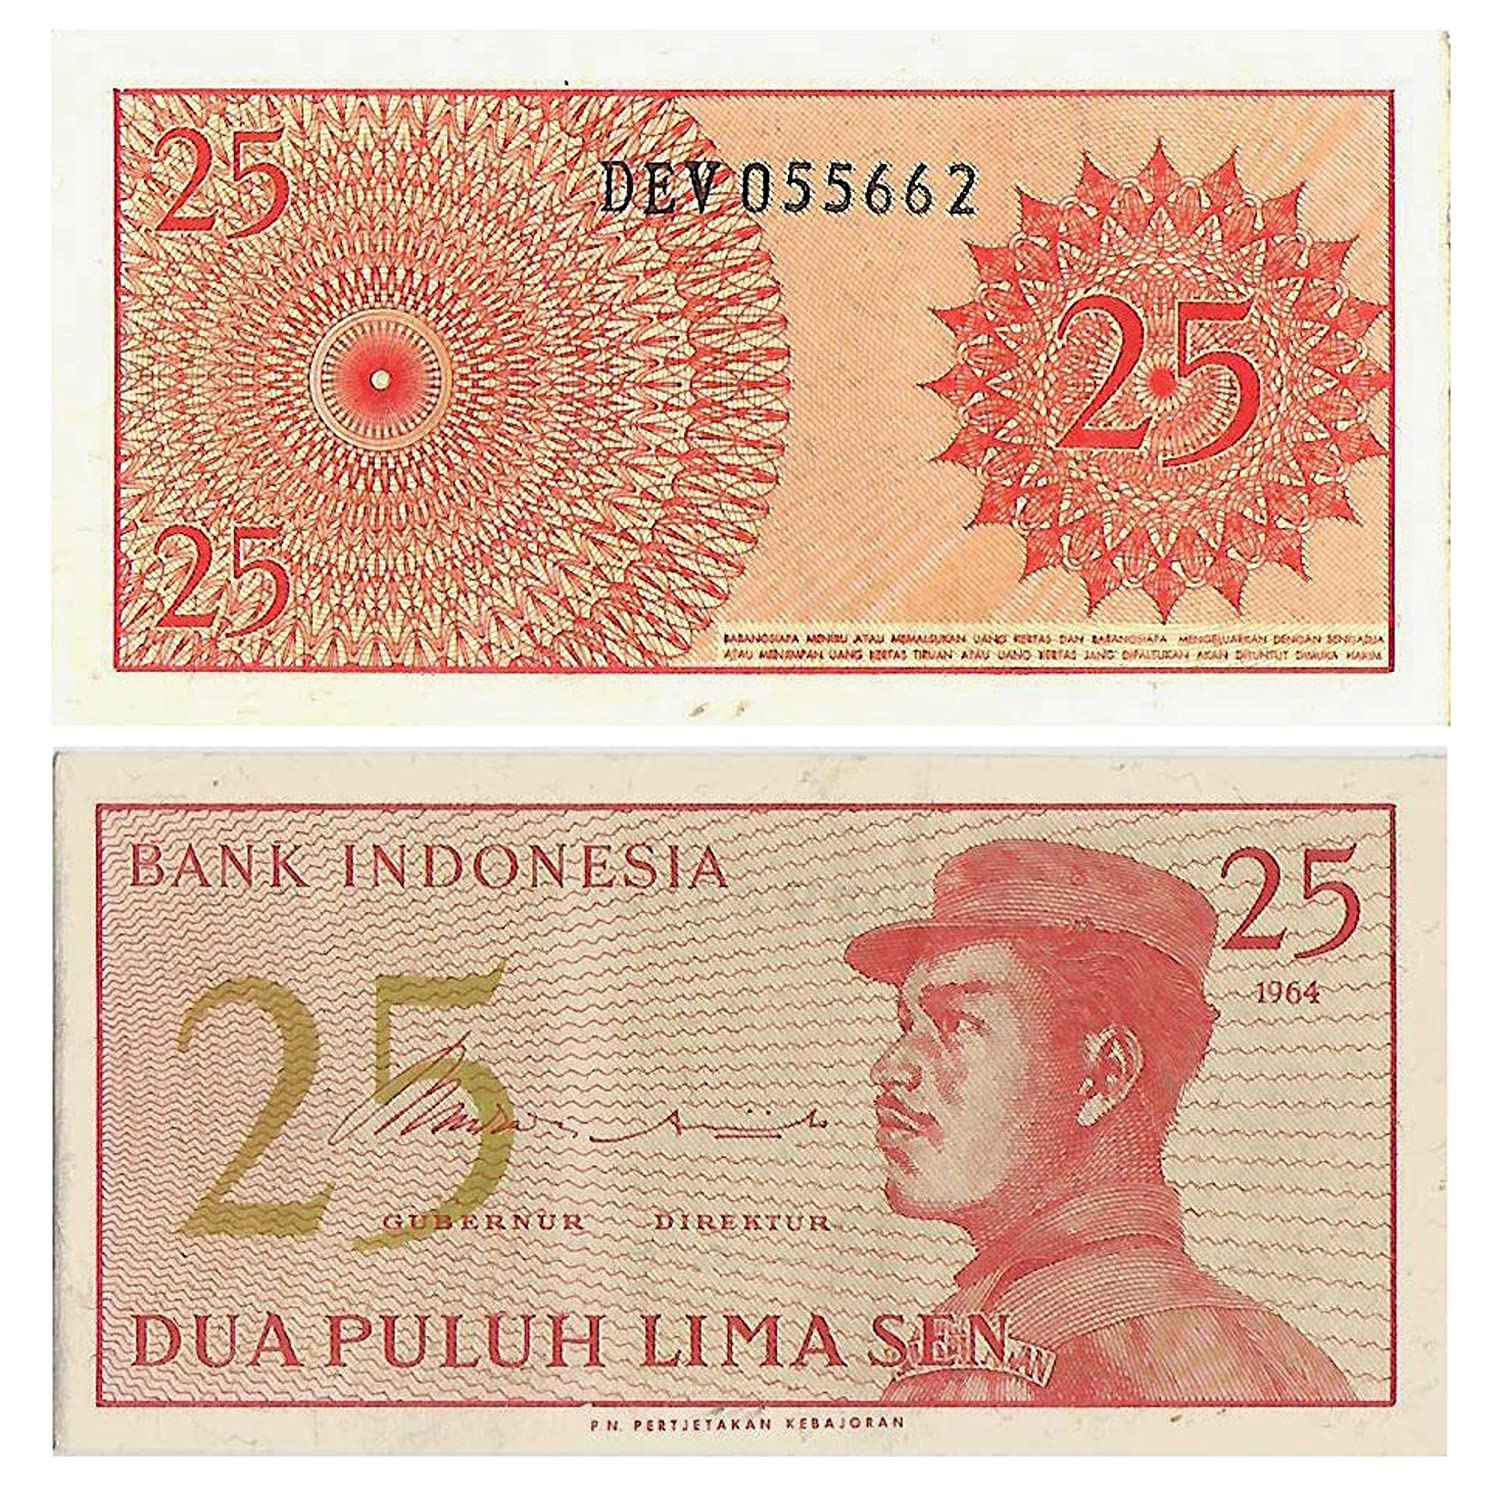 Indonesia 5 Sen 1964  Uncirculated pack of 100 World Paper Money